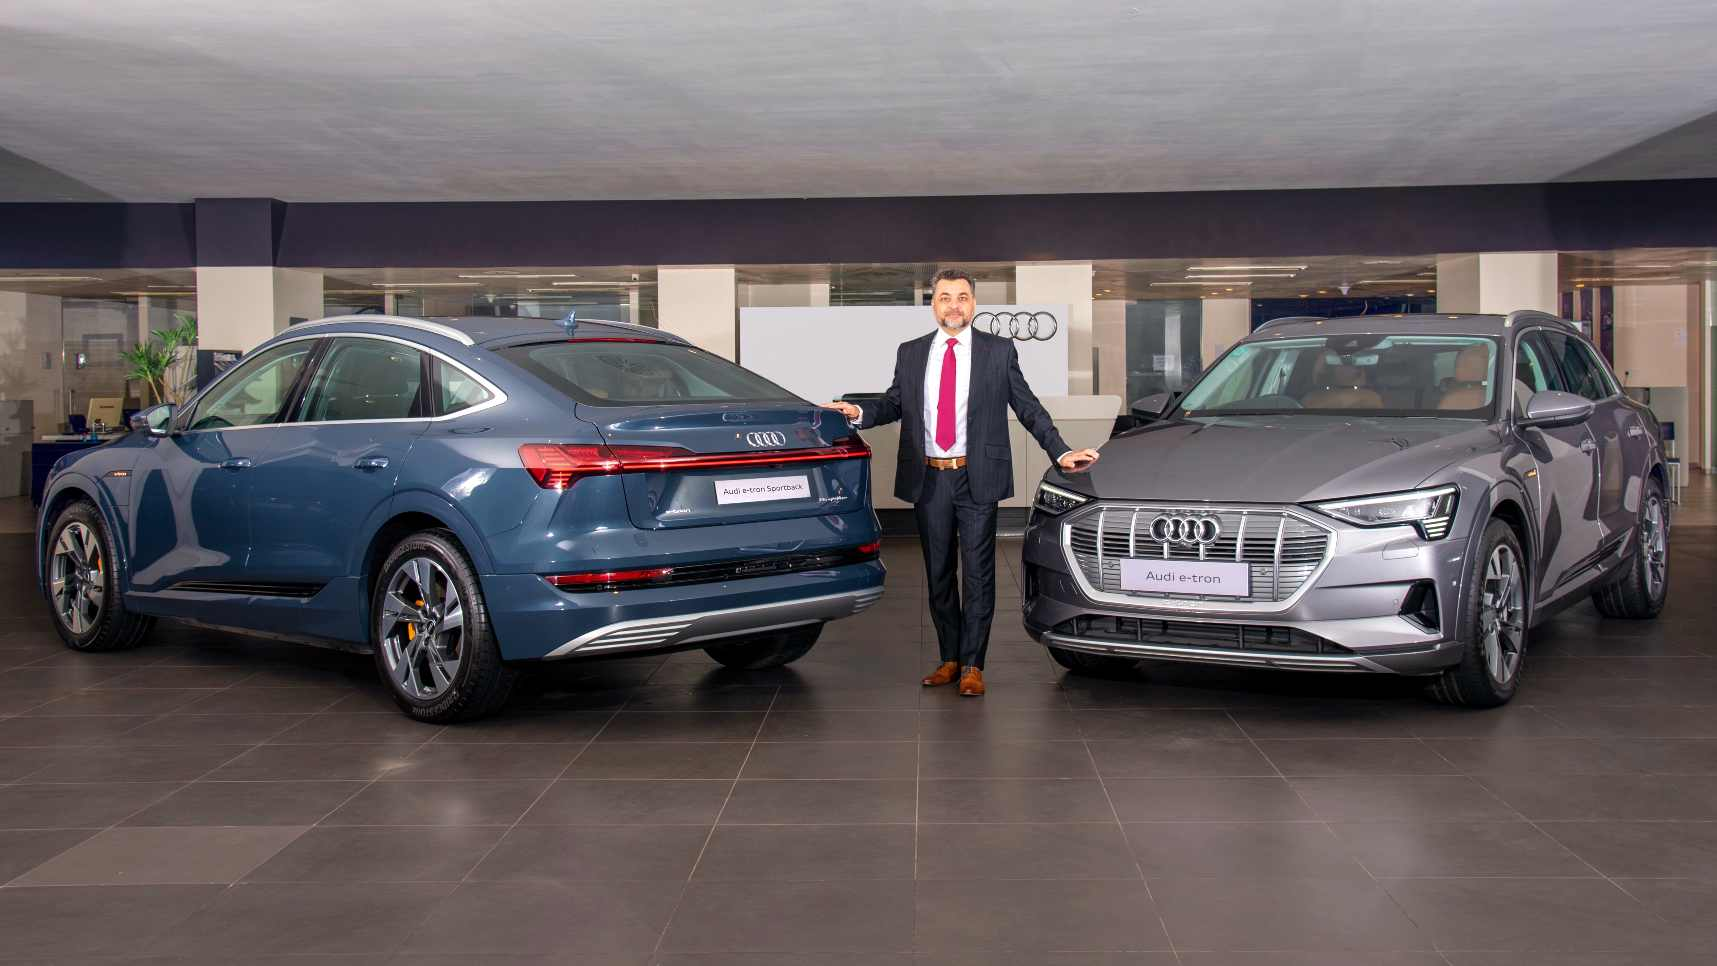 Audi e-tron and e-tron Sportback launched in India, prices cheaper than Mercedes-Benz EQC- Technology News, Firstpost